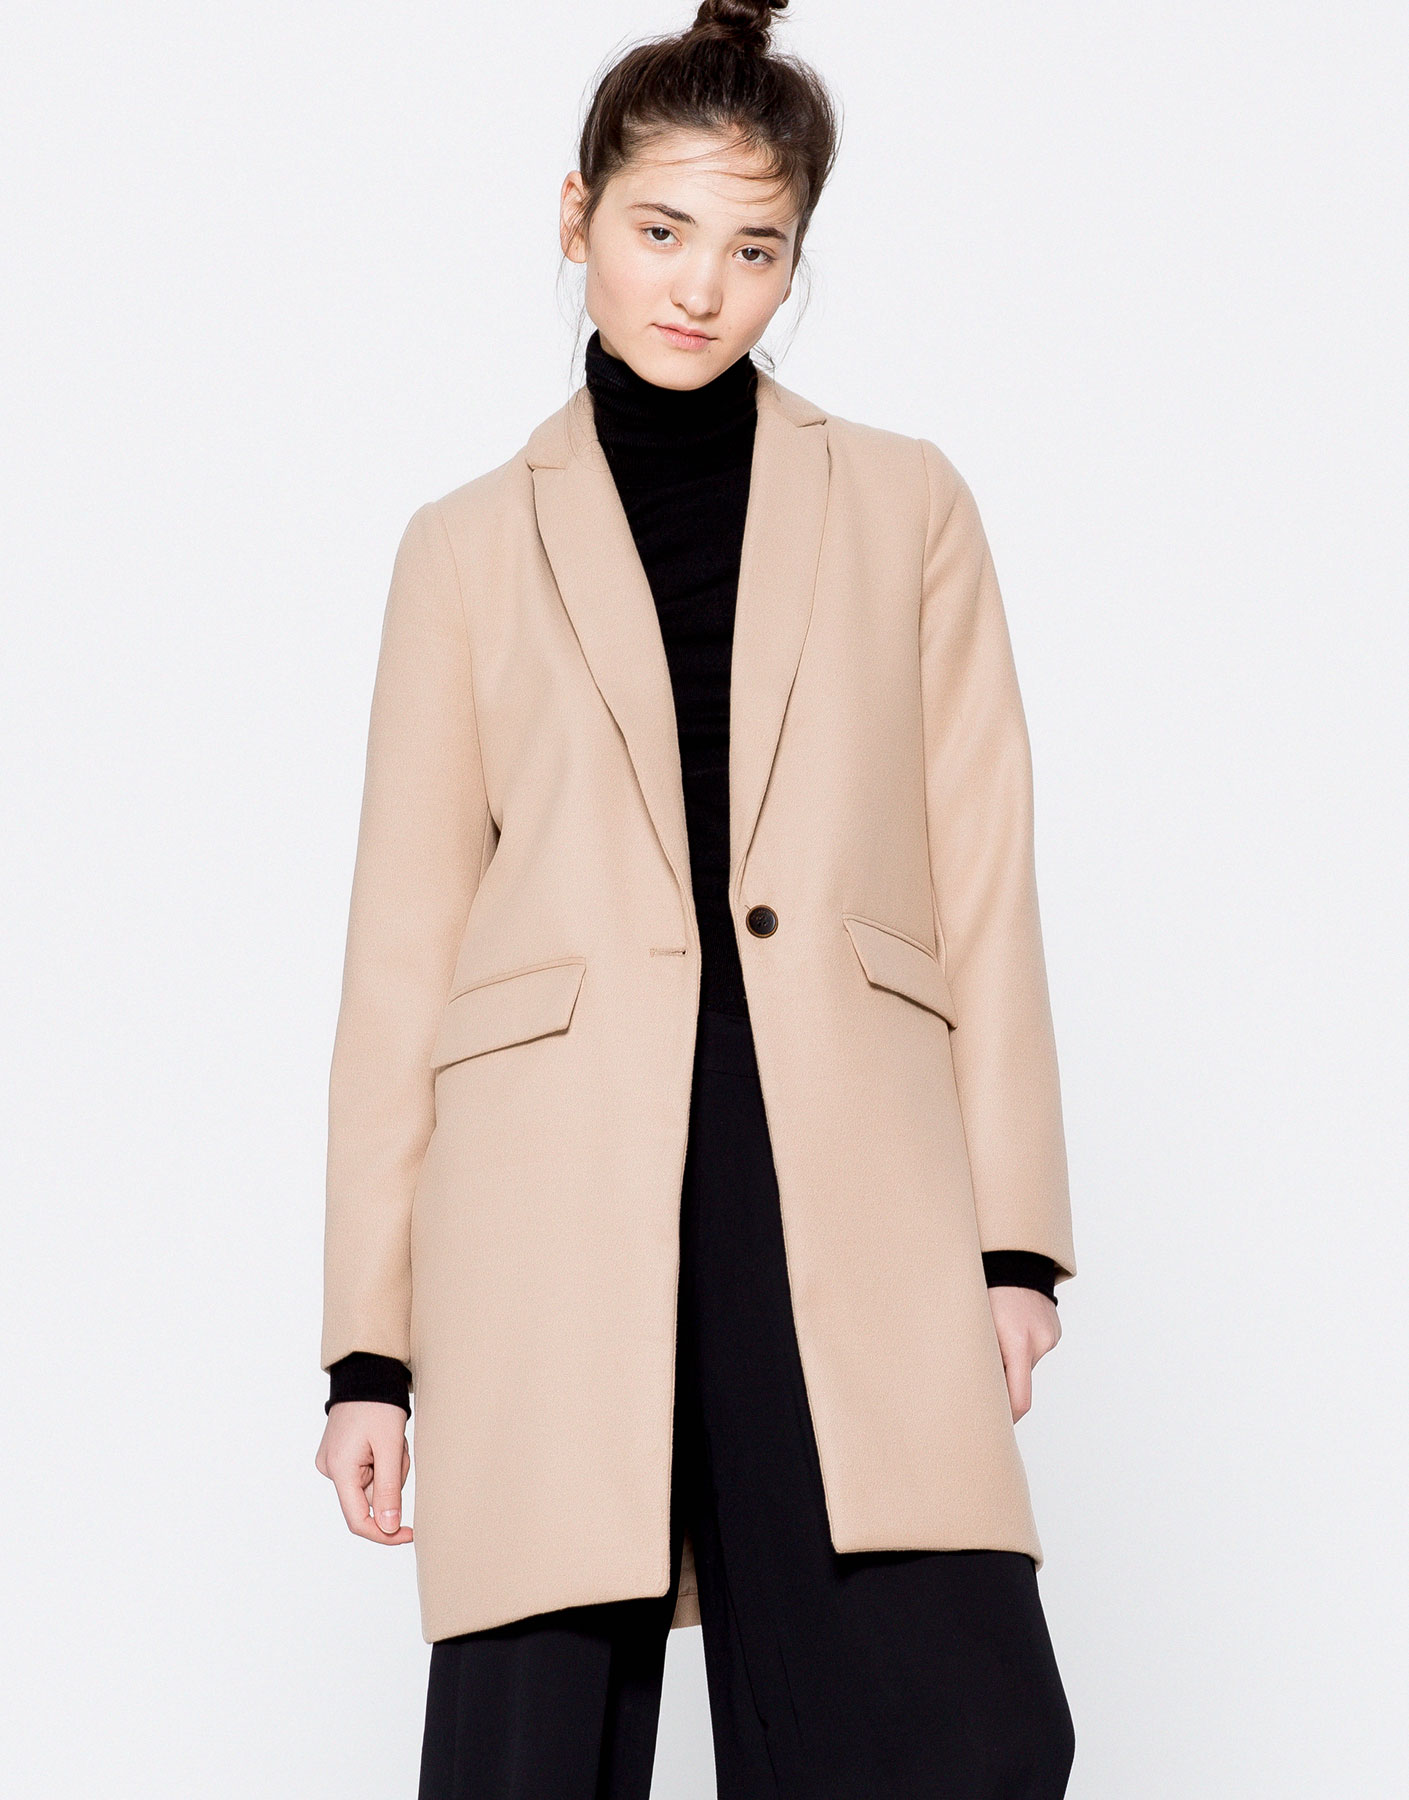 Masculine cut cloth coat